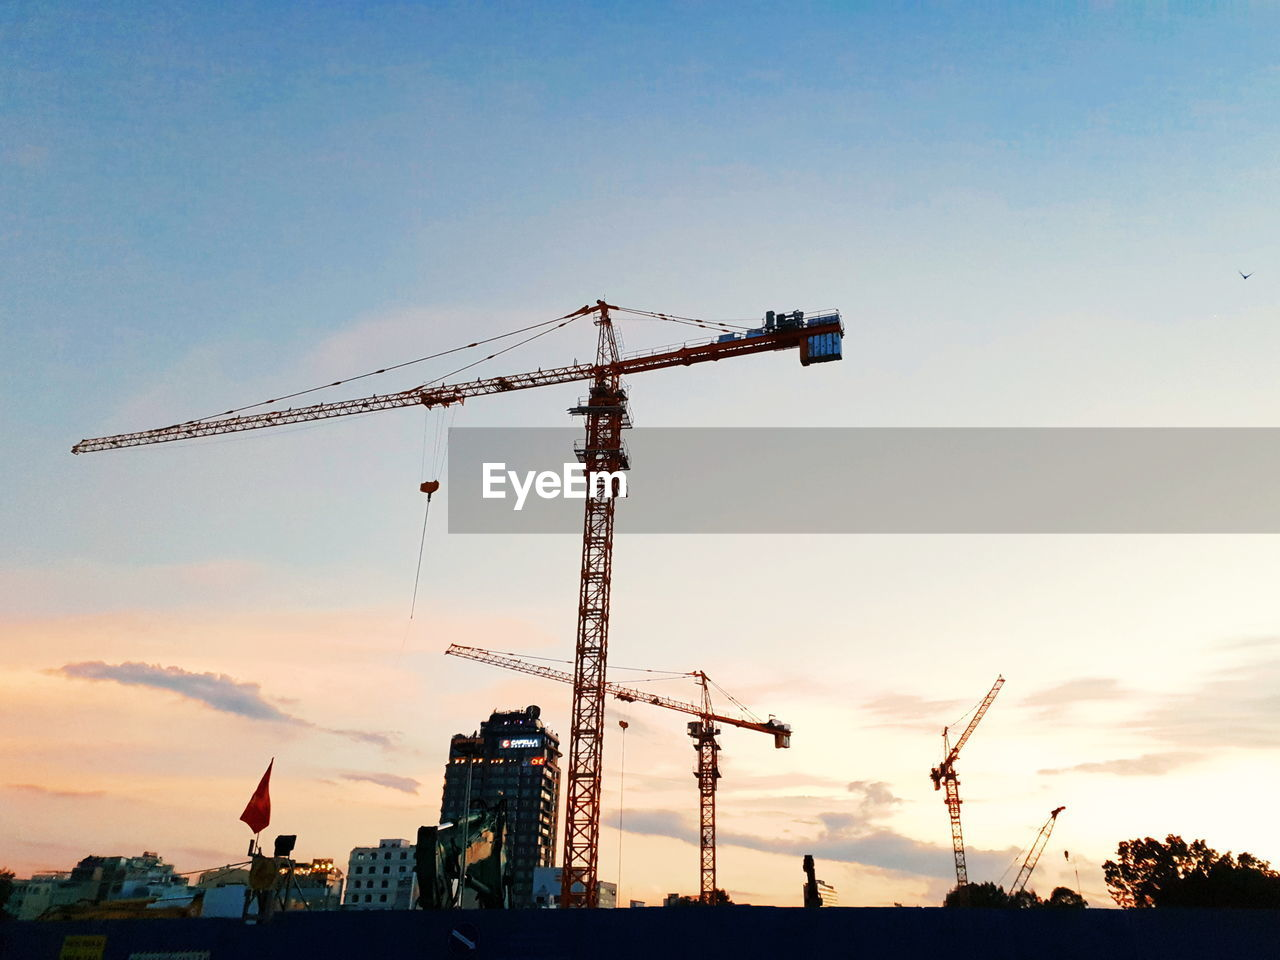 sky, crane - construction machinery, construction industry, construction site, machinery, industry, sunset, development, cloud - sky, nature, construction machinery, architecture, construction equipment, incomplete, no people, low angle view, crane, silhouette, built structure, outdoors, industrial equipment